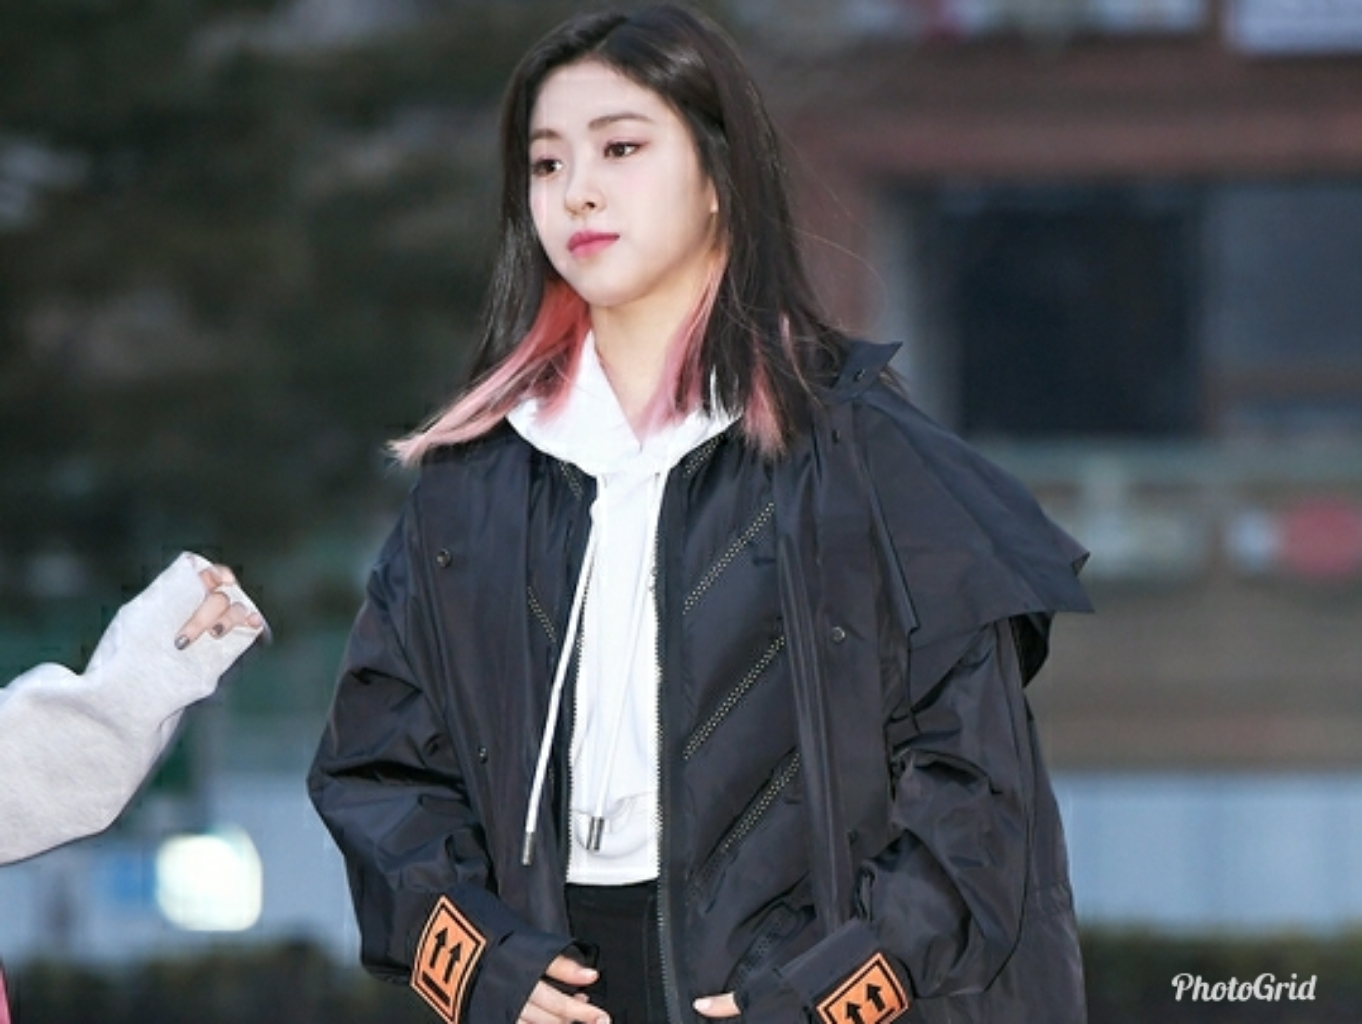 190301 Press Ryujin On The Way To Kbs Music Bank With Itzy